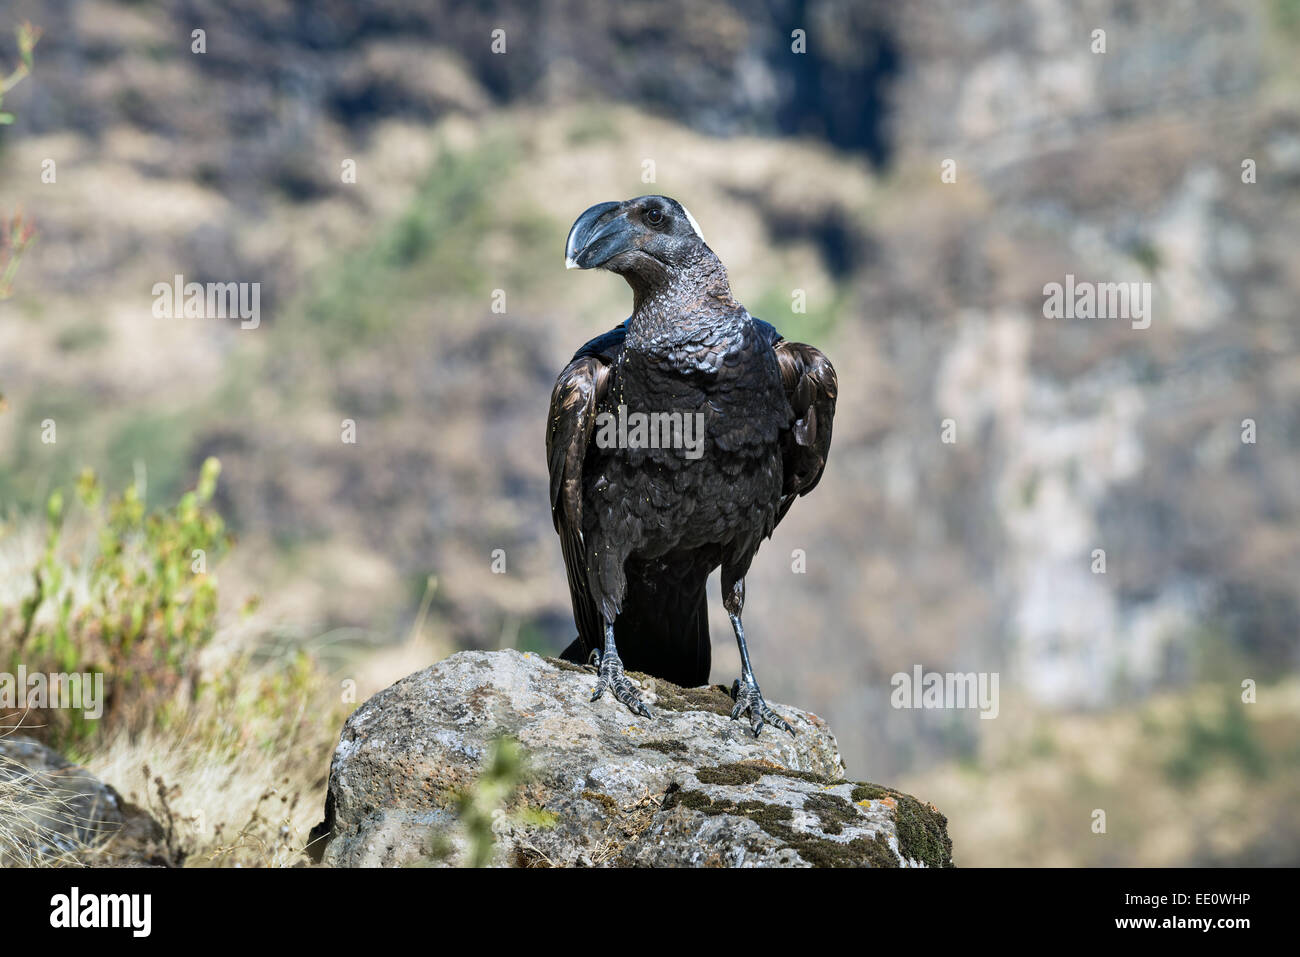 Thick-billed Raven (Corvus crassirostris) adult, standing on rock, Simien national park, Ethiopia, Africa - Stock Image